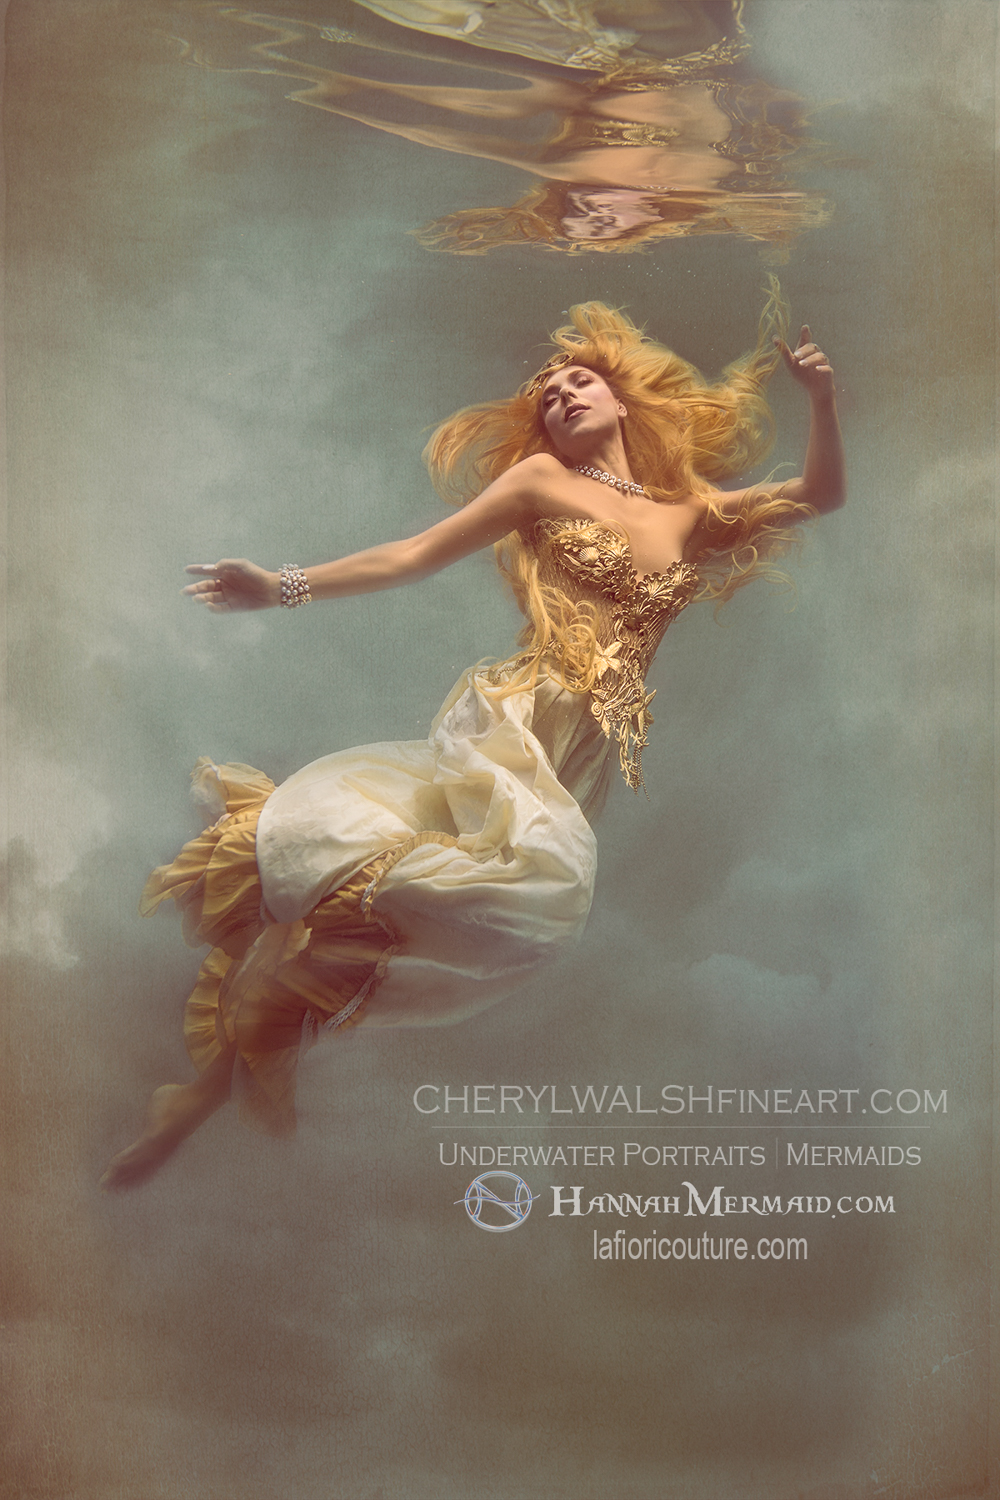 Bask in the Ethereal Beauty of Cheryl Walsh's Underwater Photography | Geek and Sundry